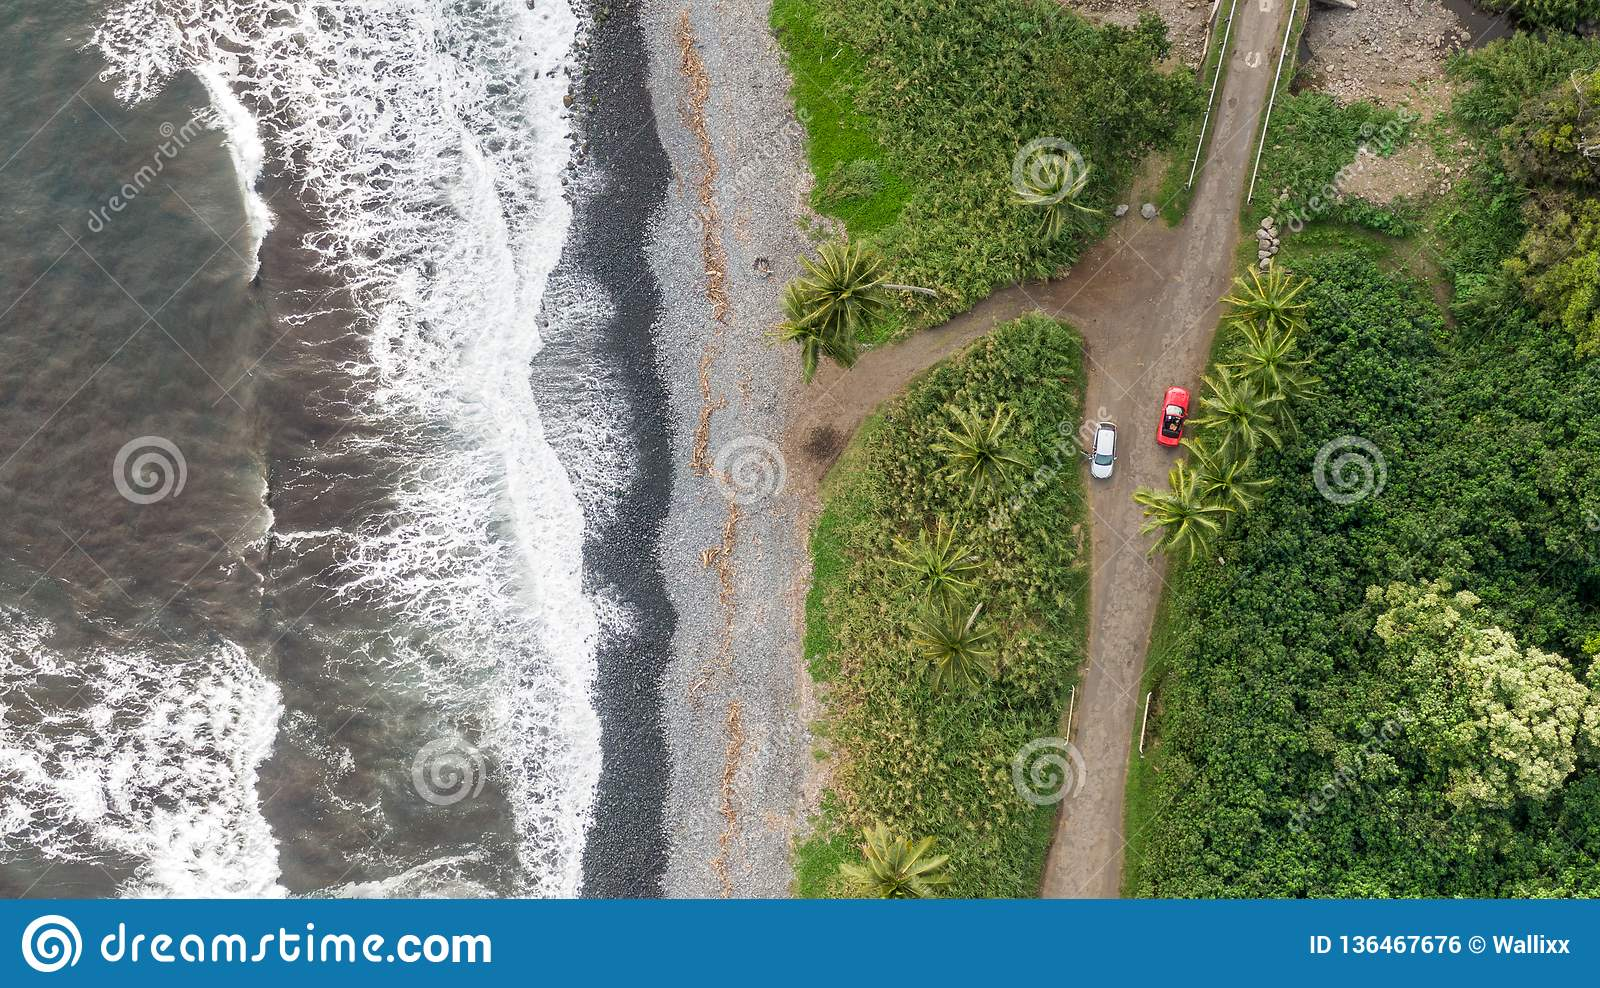 Stunning aerial drone view of a section of the famous Hana Highway south of Hana on the eastern side of the island of Maui, Hawaii